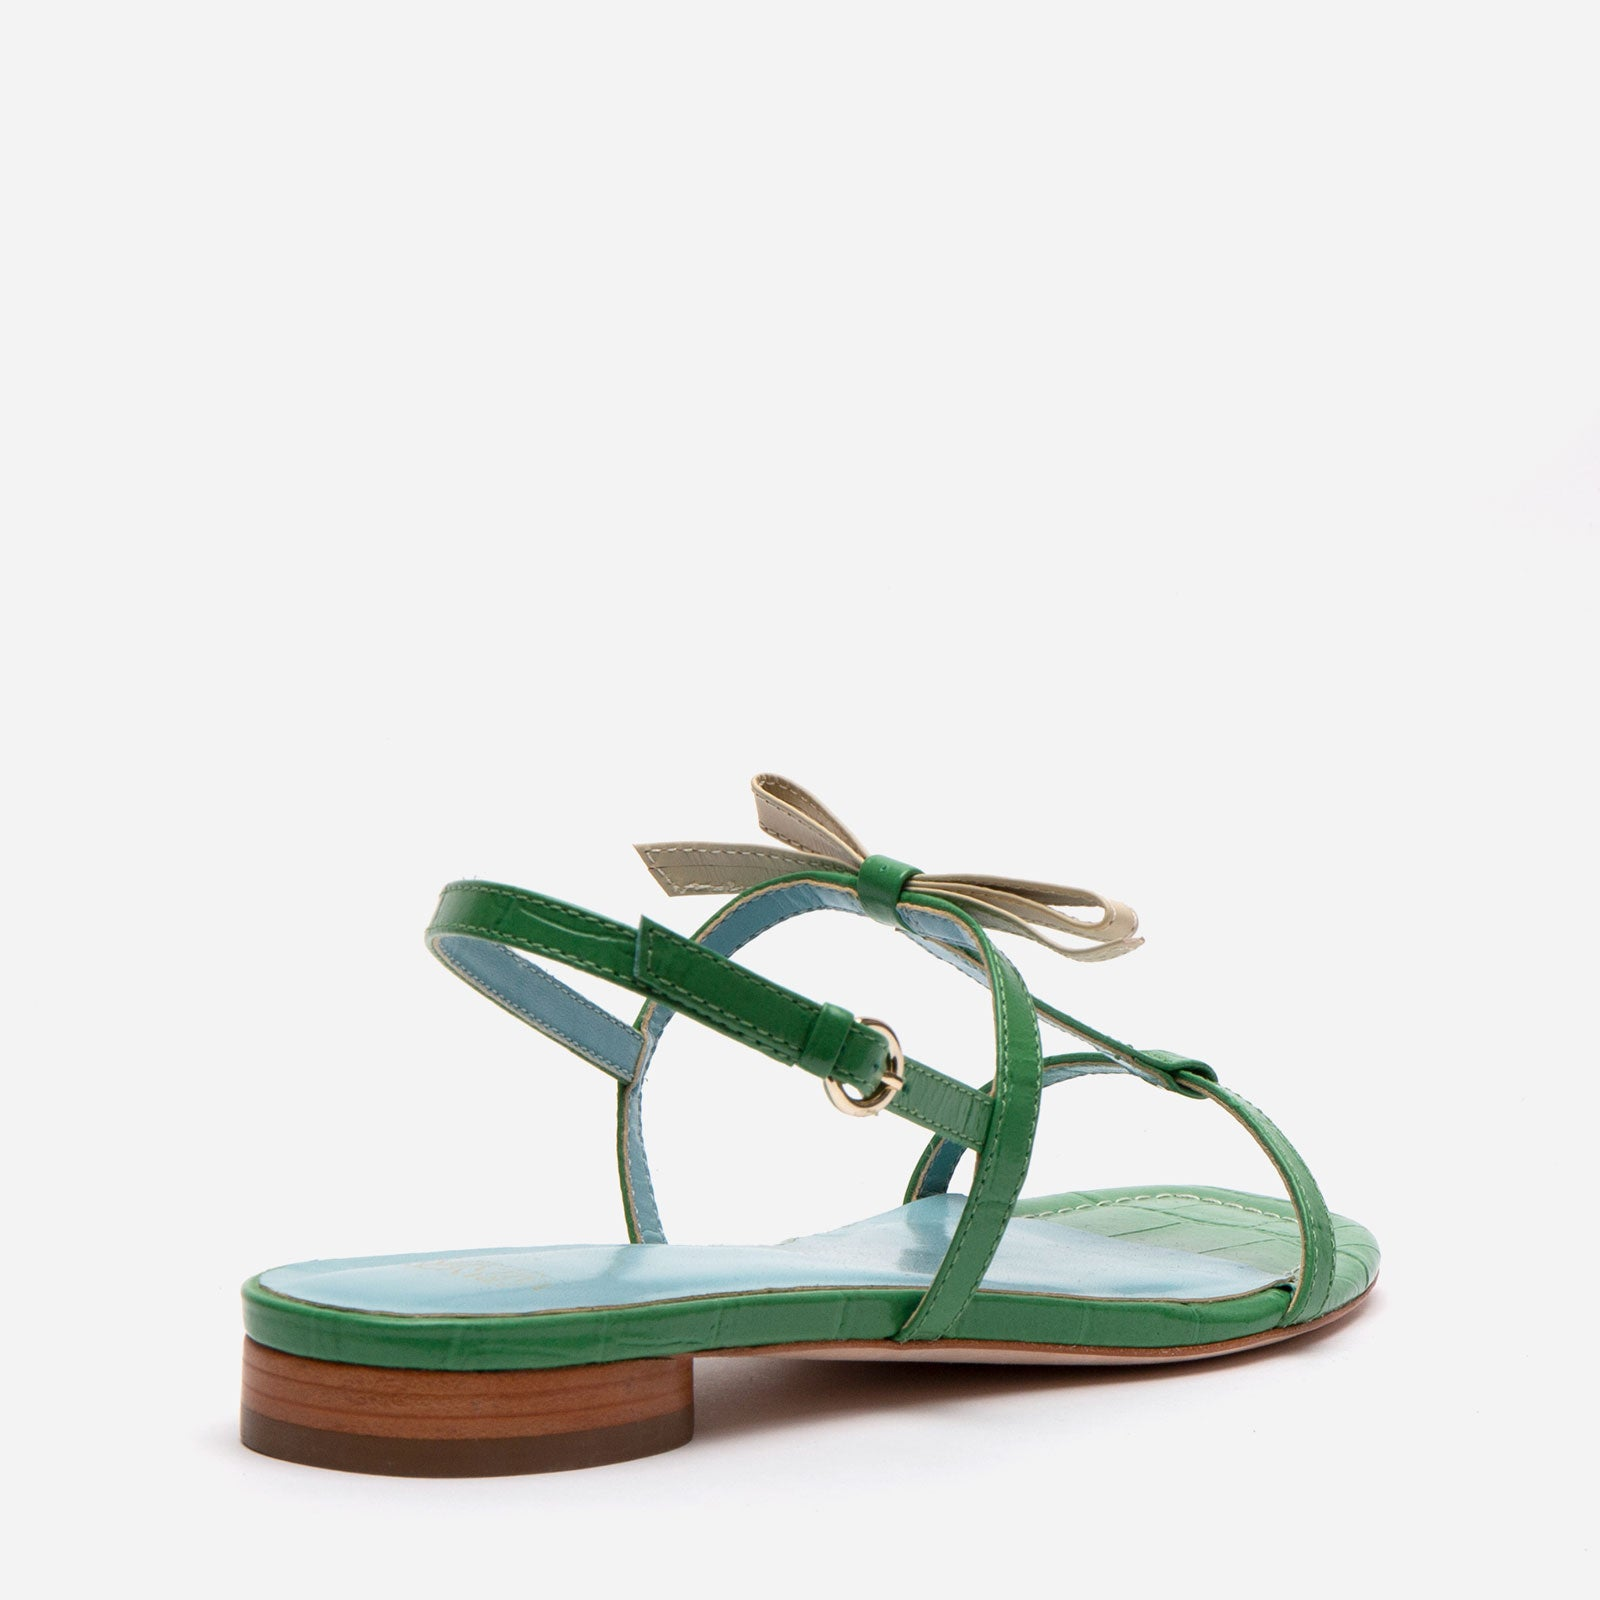 Lily Croc Slingback Leather Sandal Green